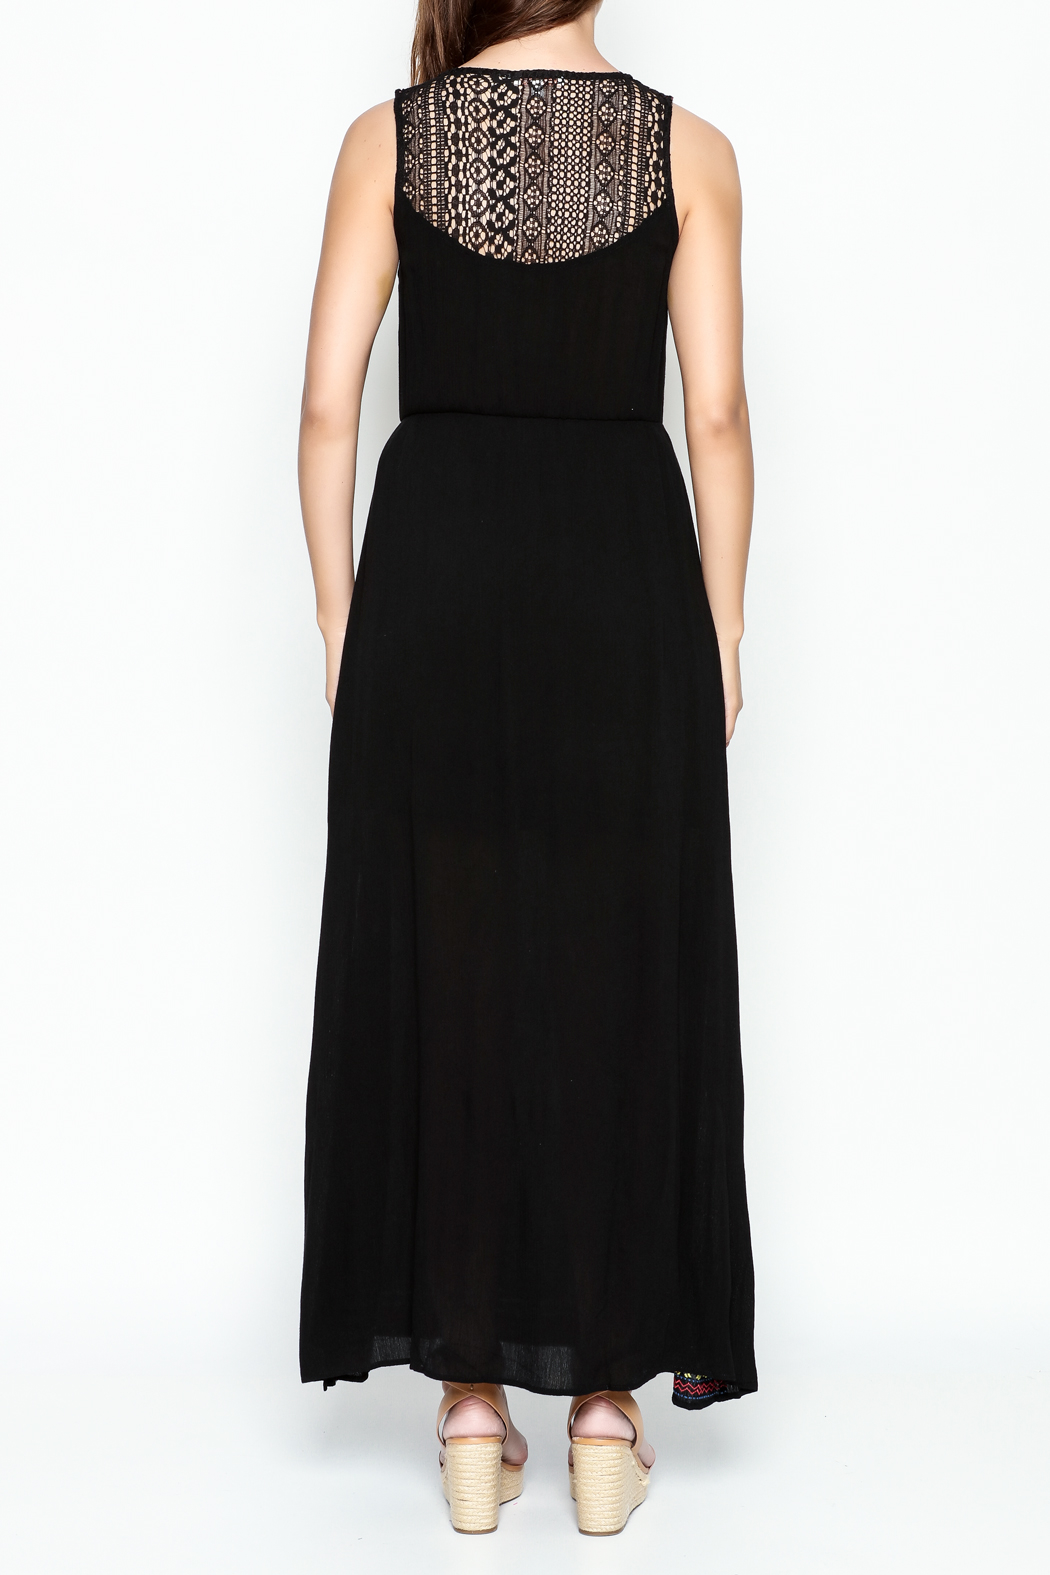 Skies Are Blue Black Maxi Dress - Back Cropped Image